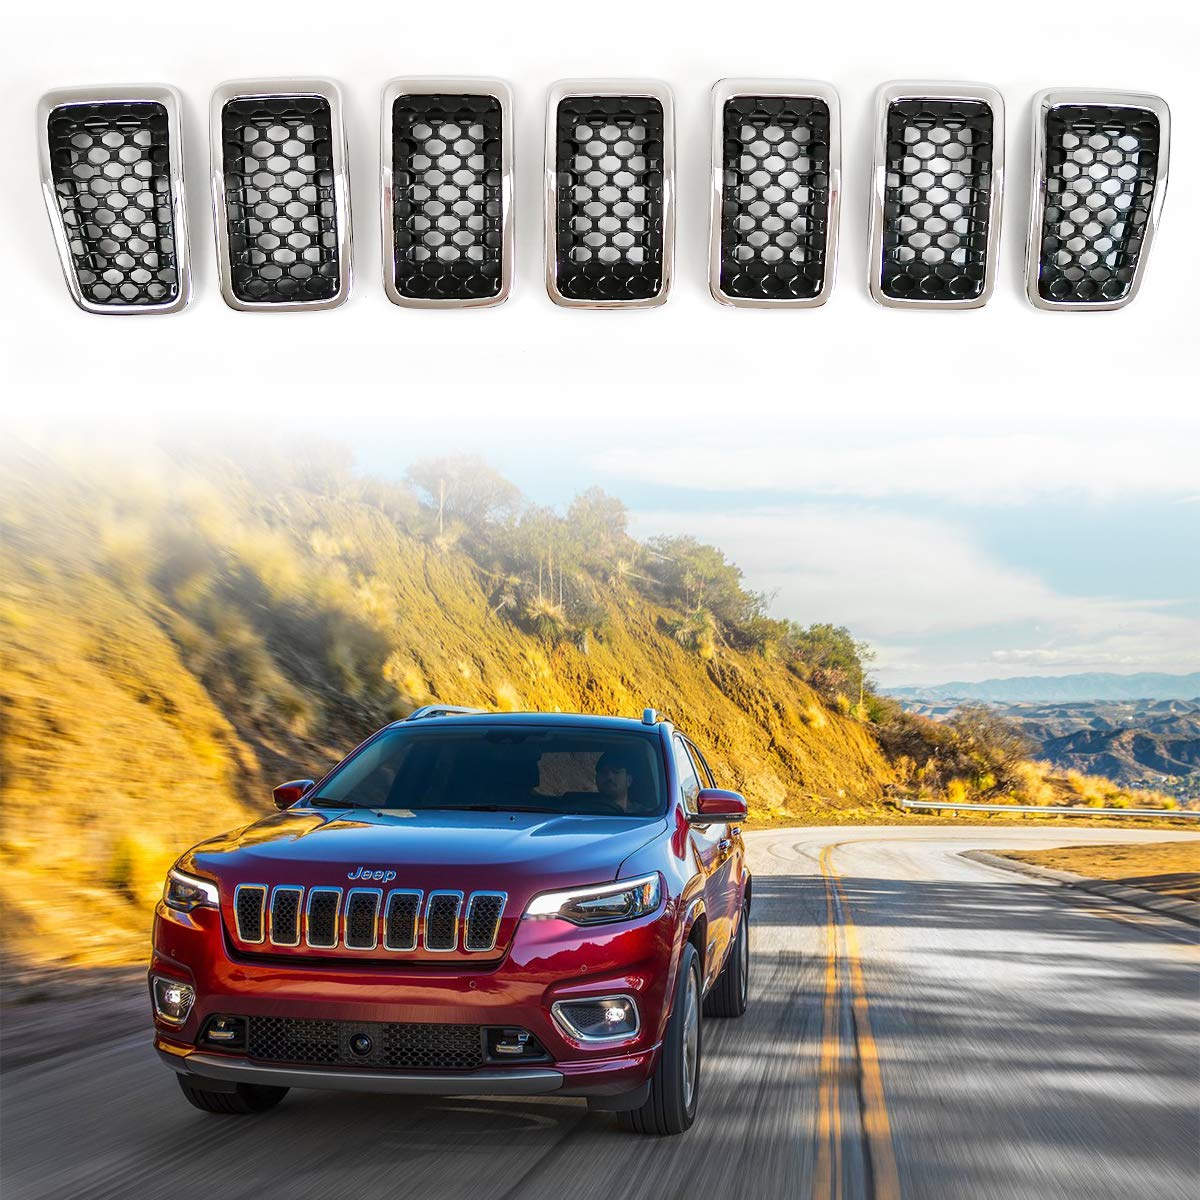 XBEEK 7PC Front Grill Mesh Honeycomb Insert Chrome Ring Grille Inserts for 2019-2020 Jeep Cherokee